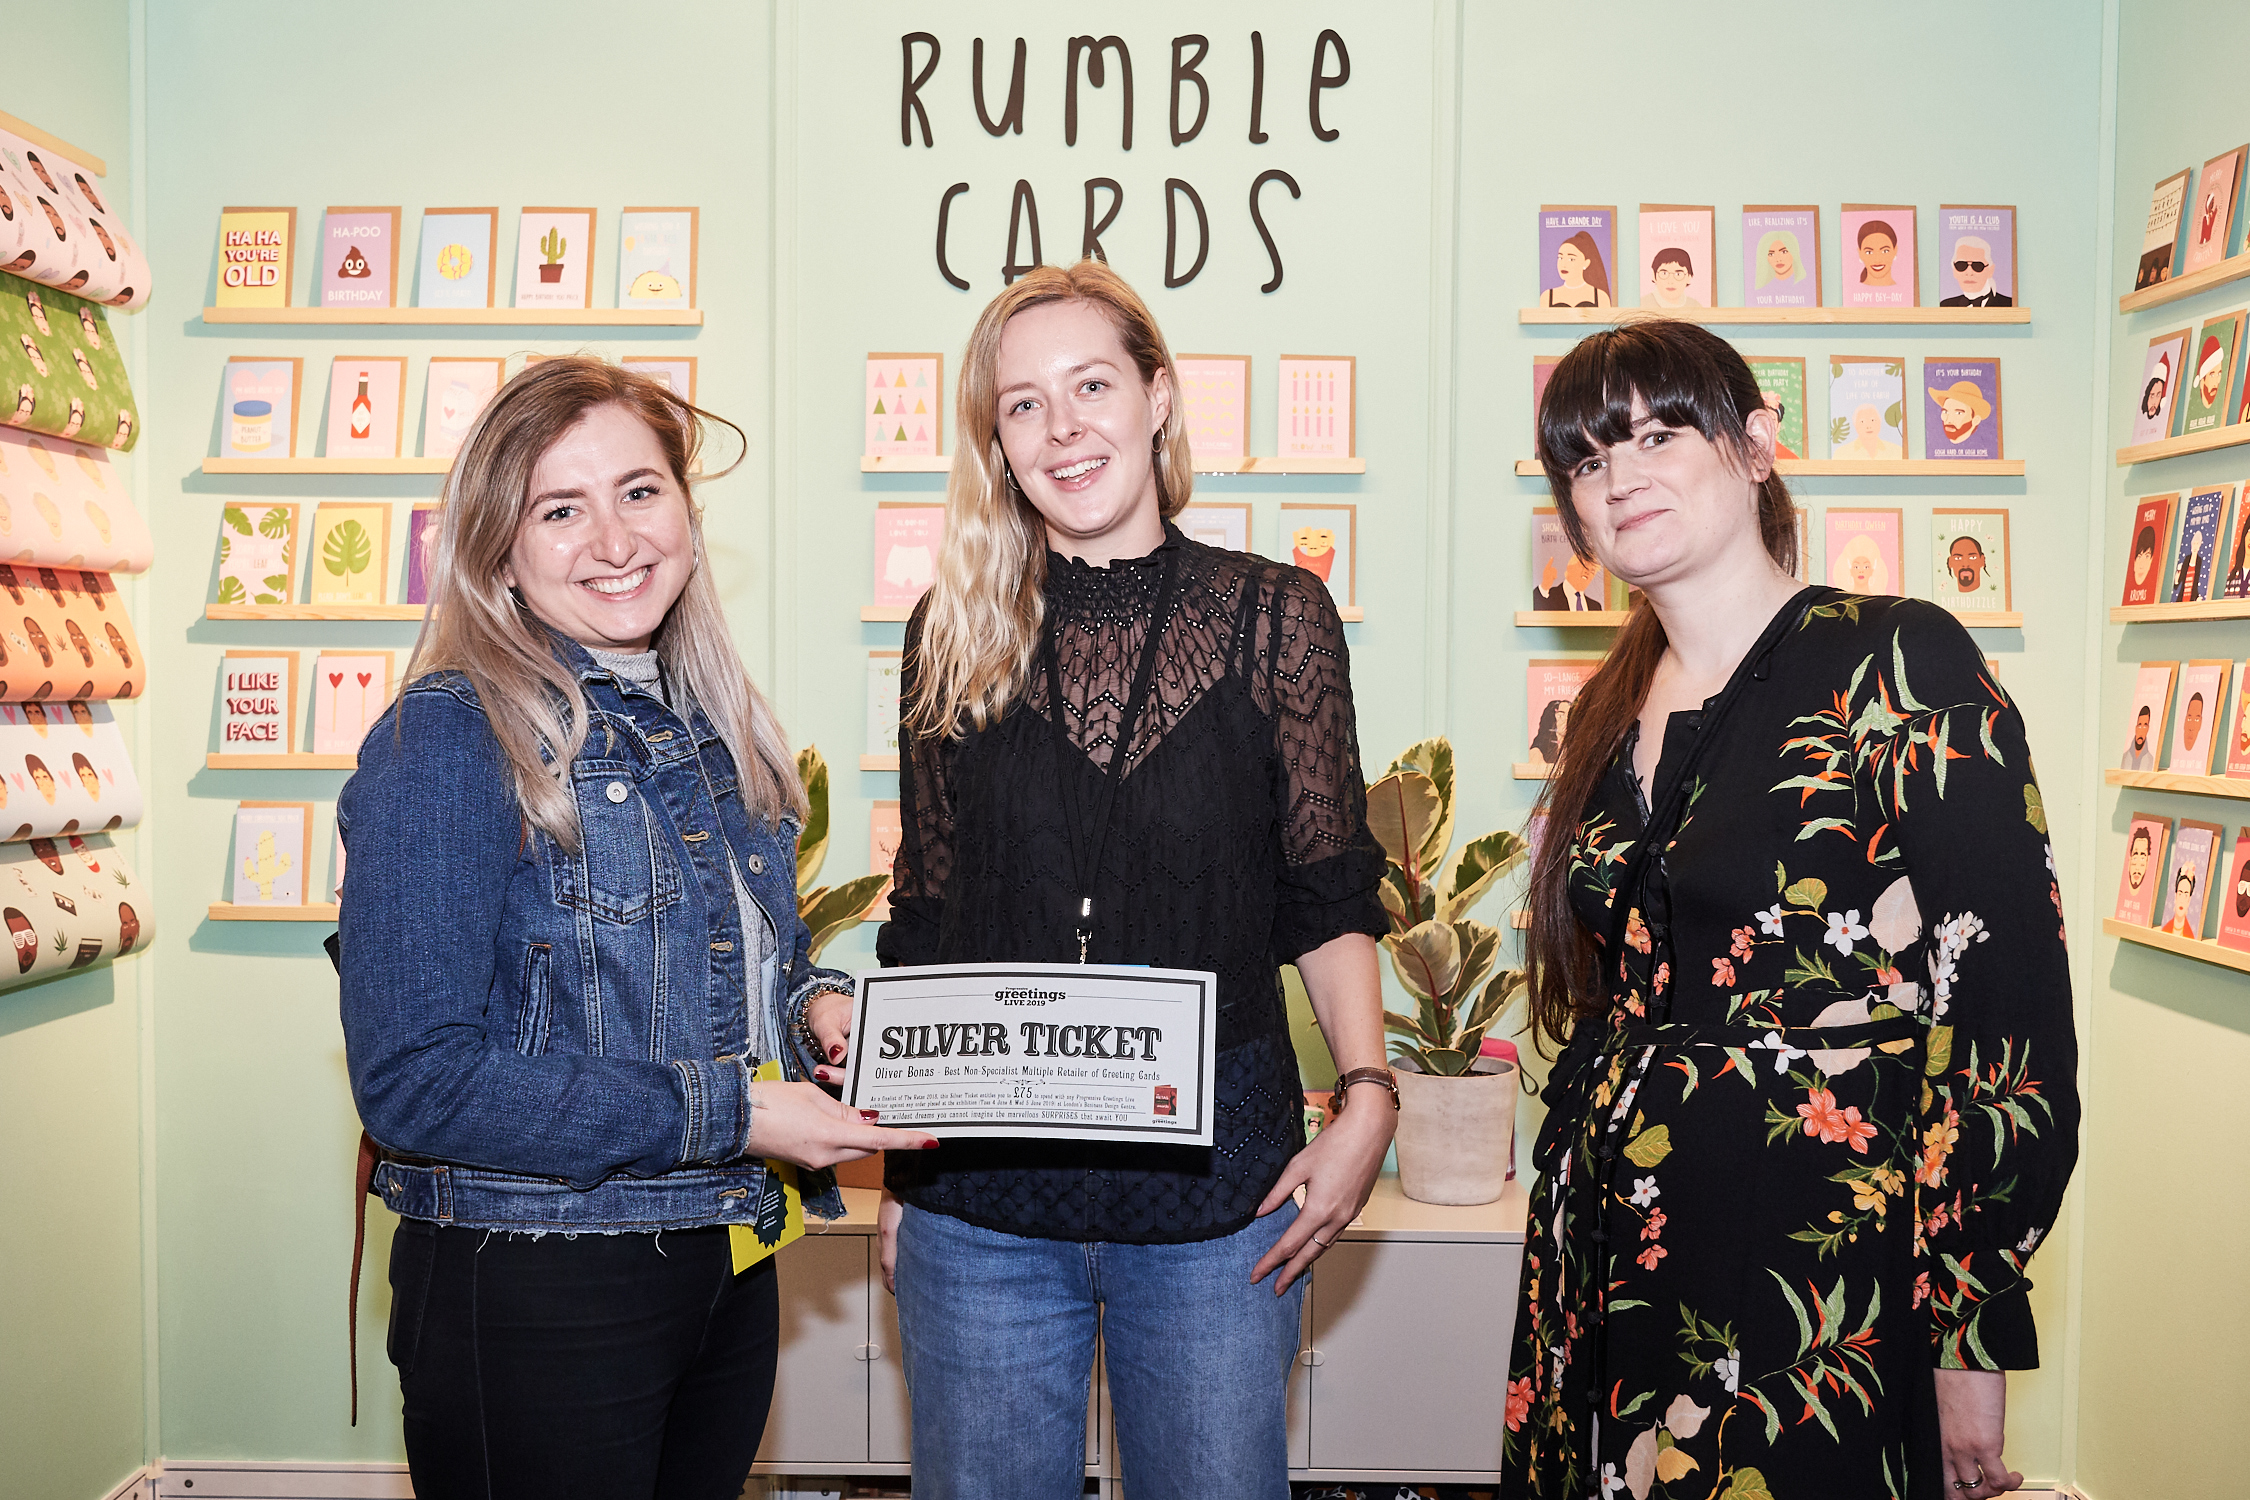 Above: Oliver Bonas' Natalia Kostereska (left) and Siobhan Watkins (right) were delighted to spend their Silver Ticket with Rumble Cards.